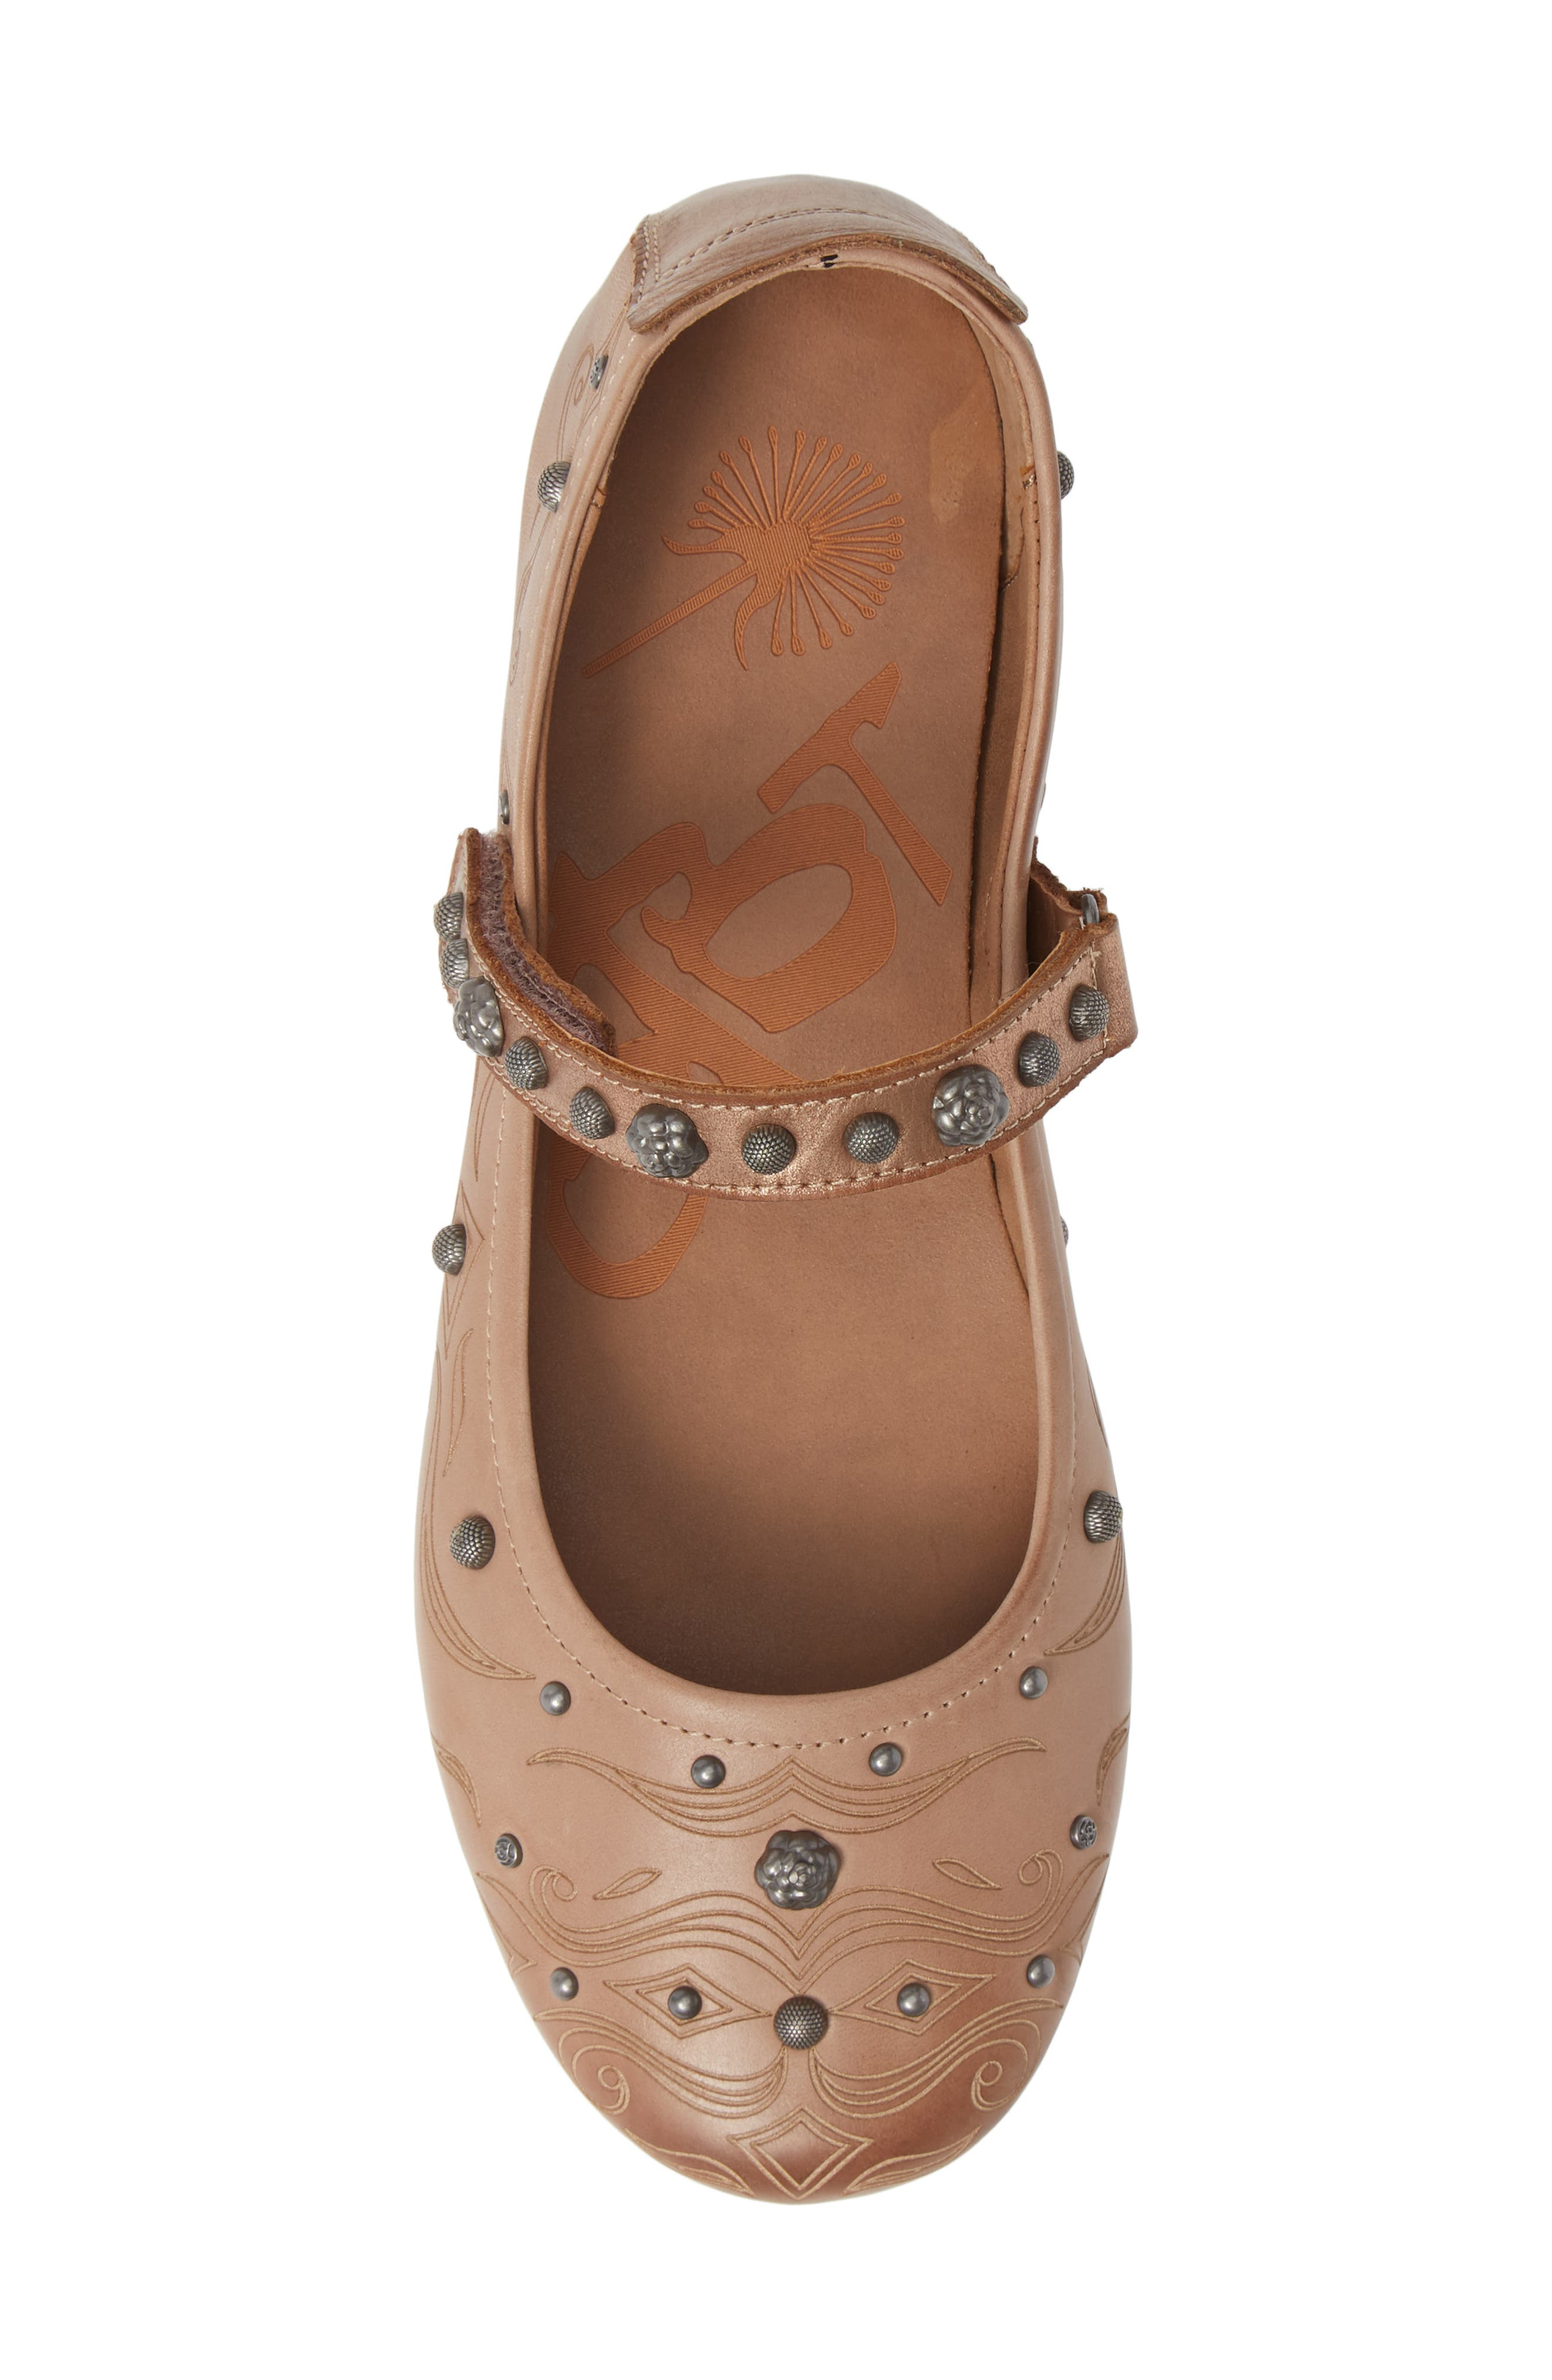 Gamine 2 Mary Jane Flat,                             Alternate thumbnail 5, color,                             WARM PINK LEATHER